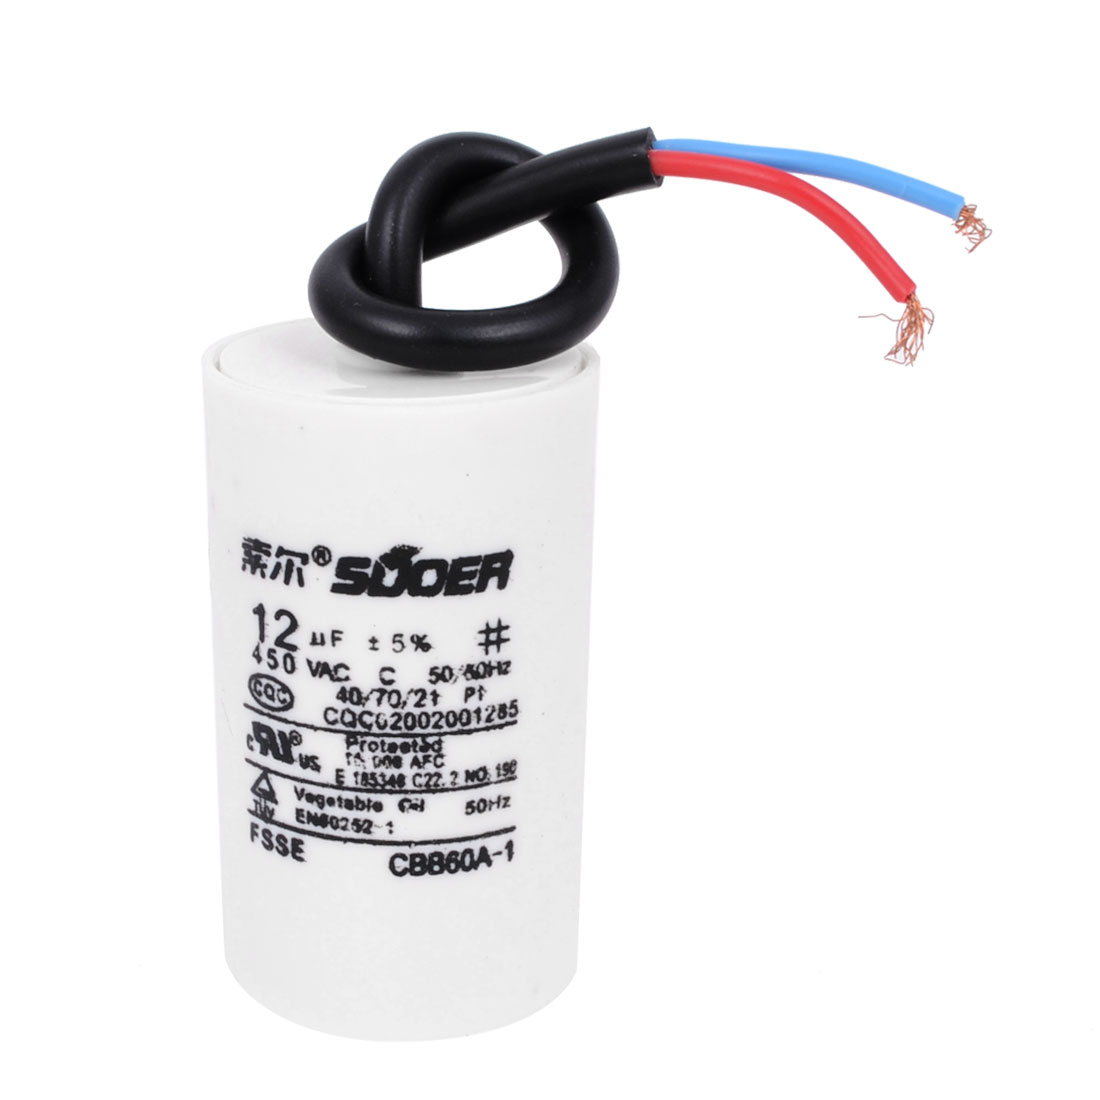 Washing Machine Washer Polypropylene Film Wire Motor Running Capacitor AC 450V 12uF CBB60